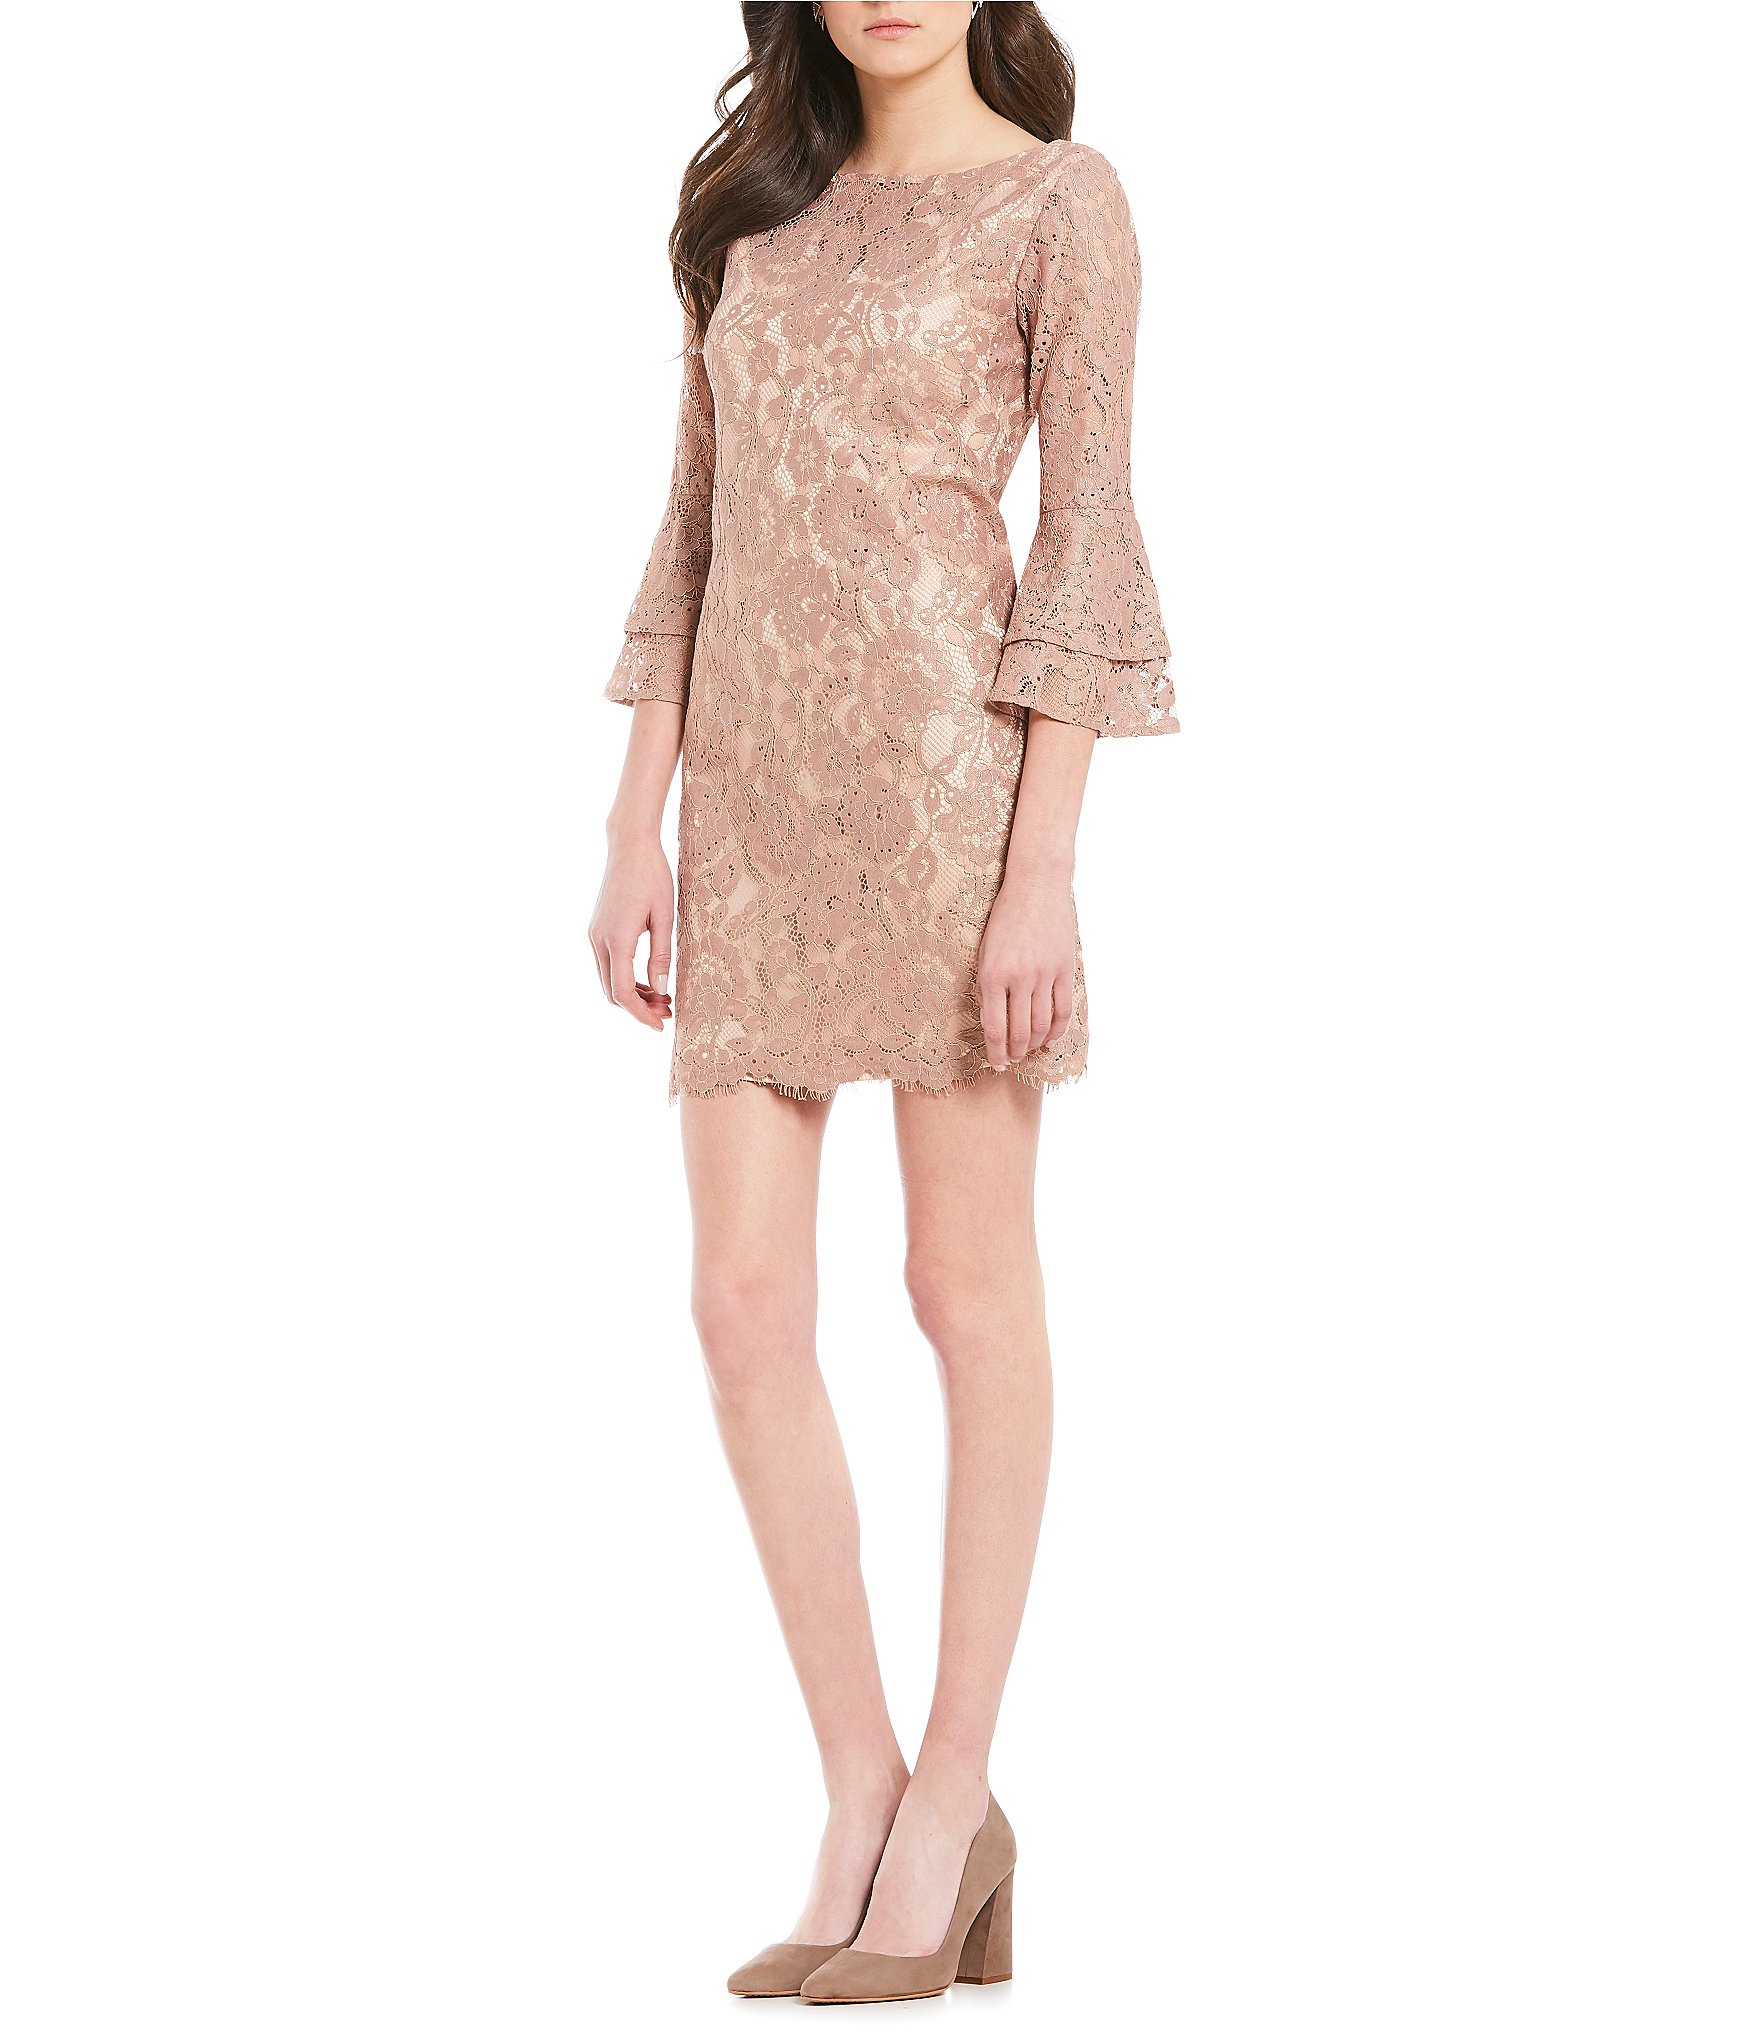 Vince Camuto The Wedding Shop | Bridal Gowns & Wedding Party Attire ...